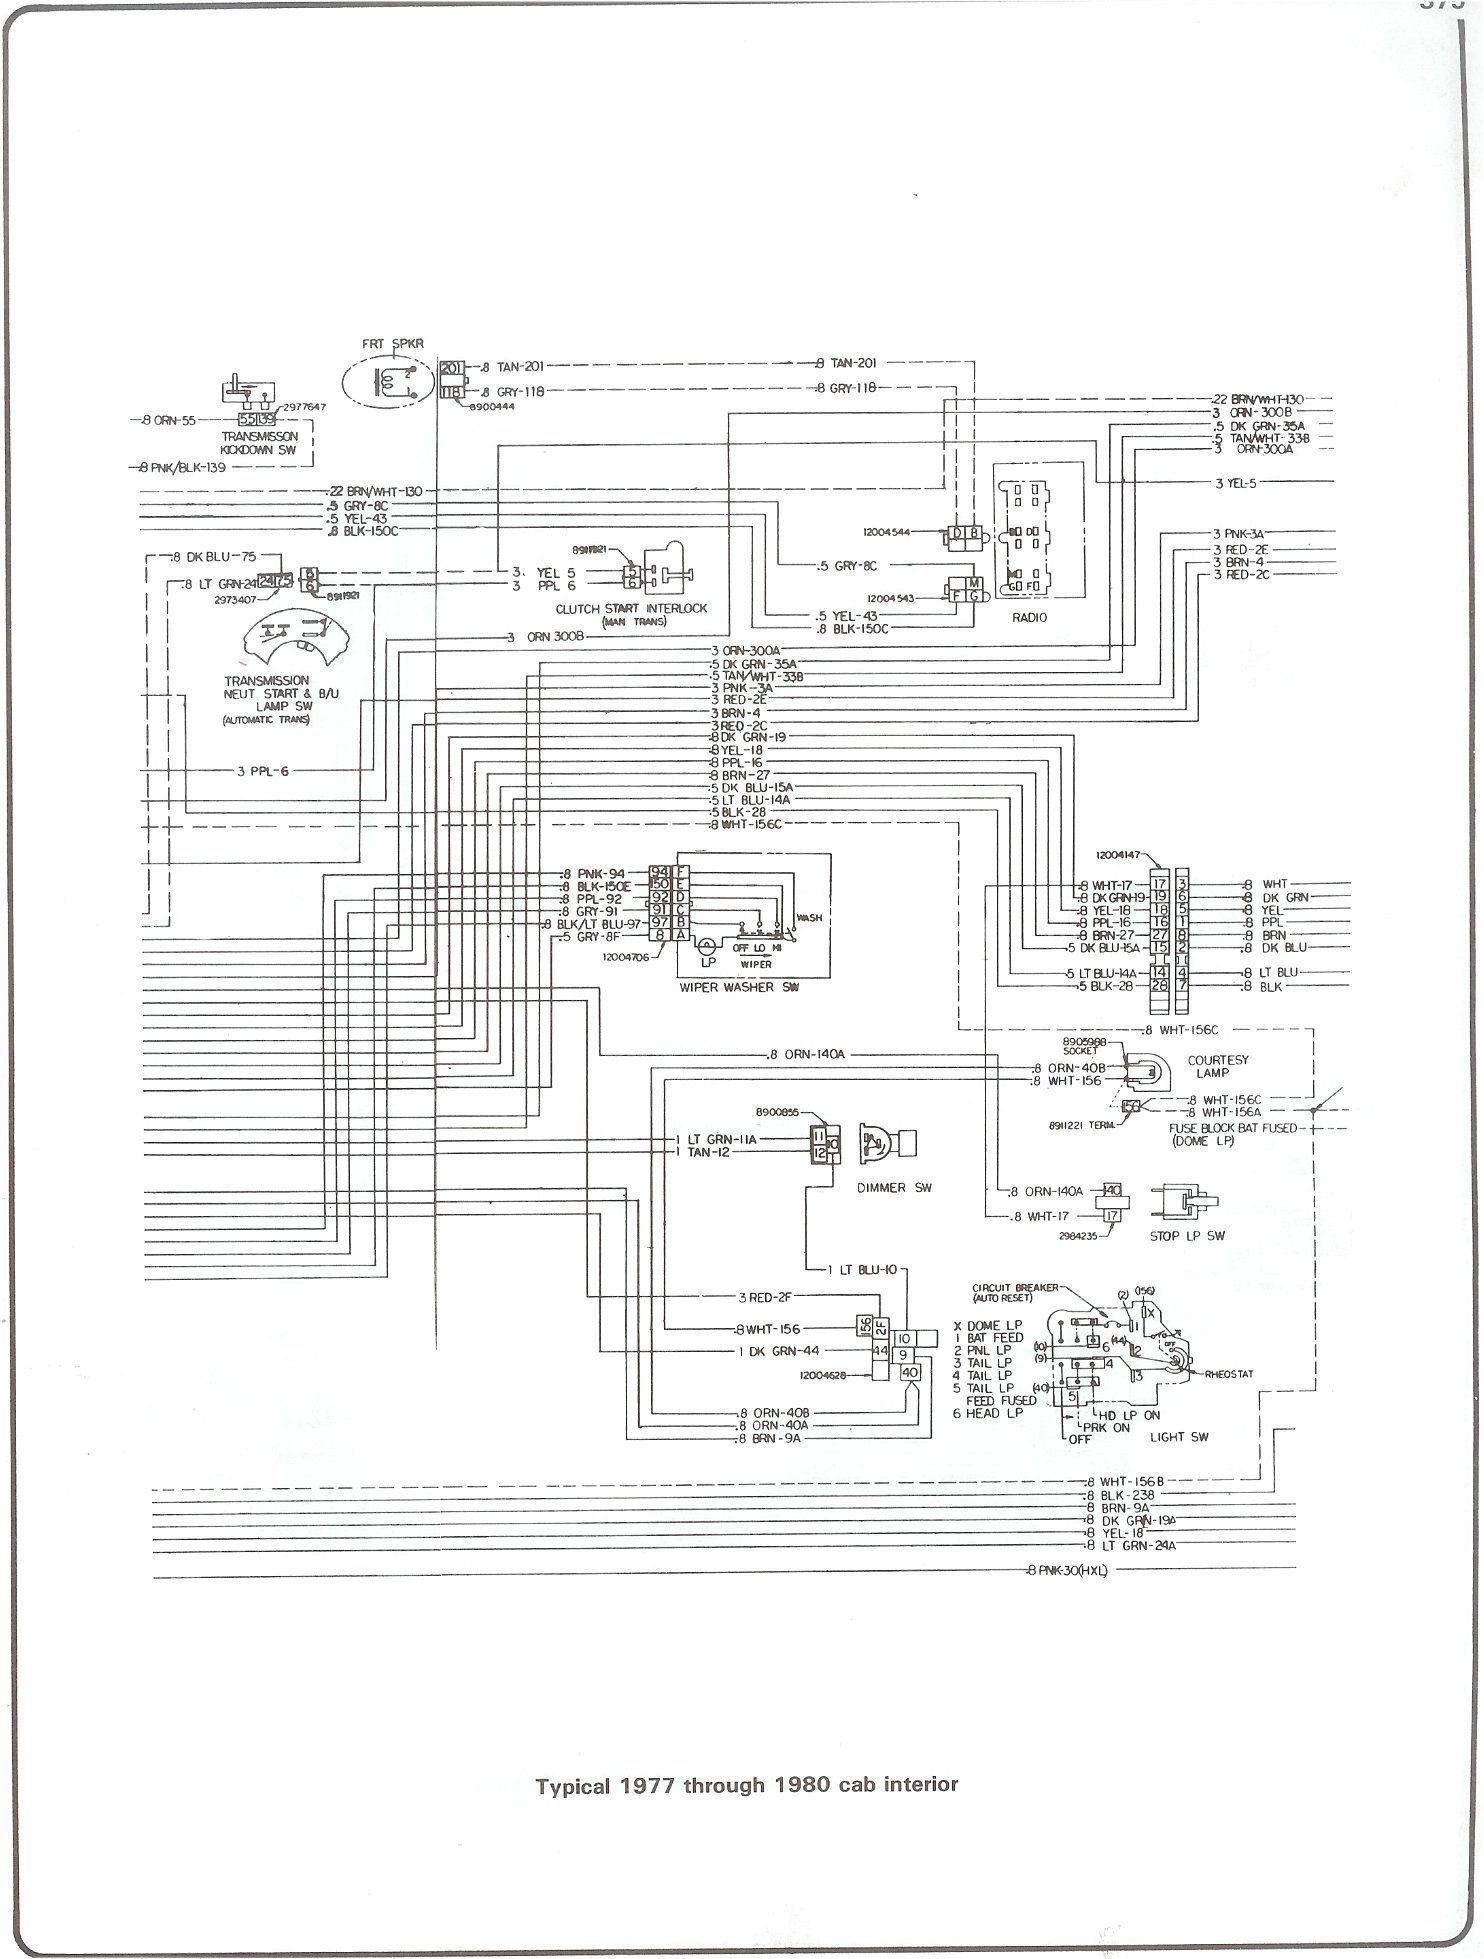 84 Chevy Truck Wiring Harness - wiring diagram on the net on